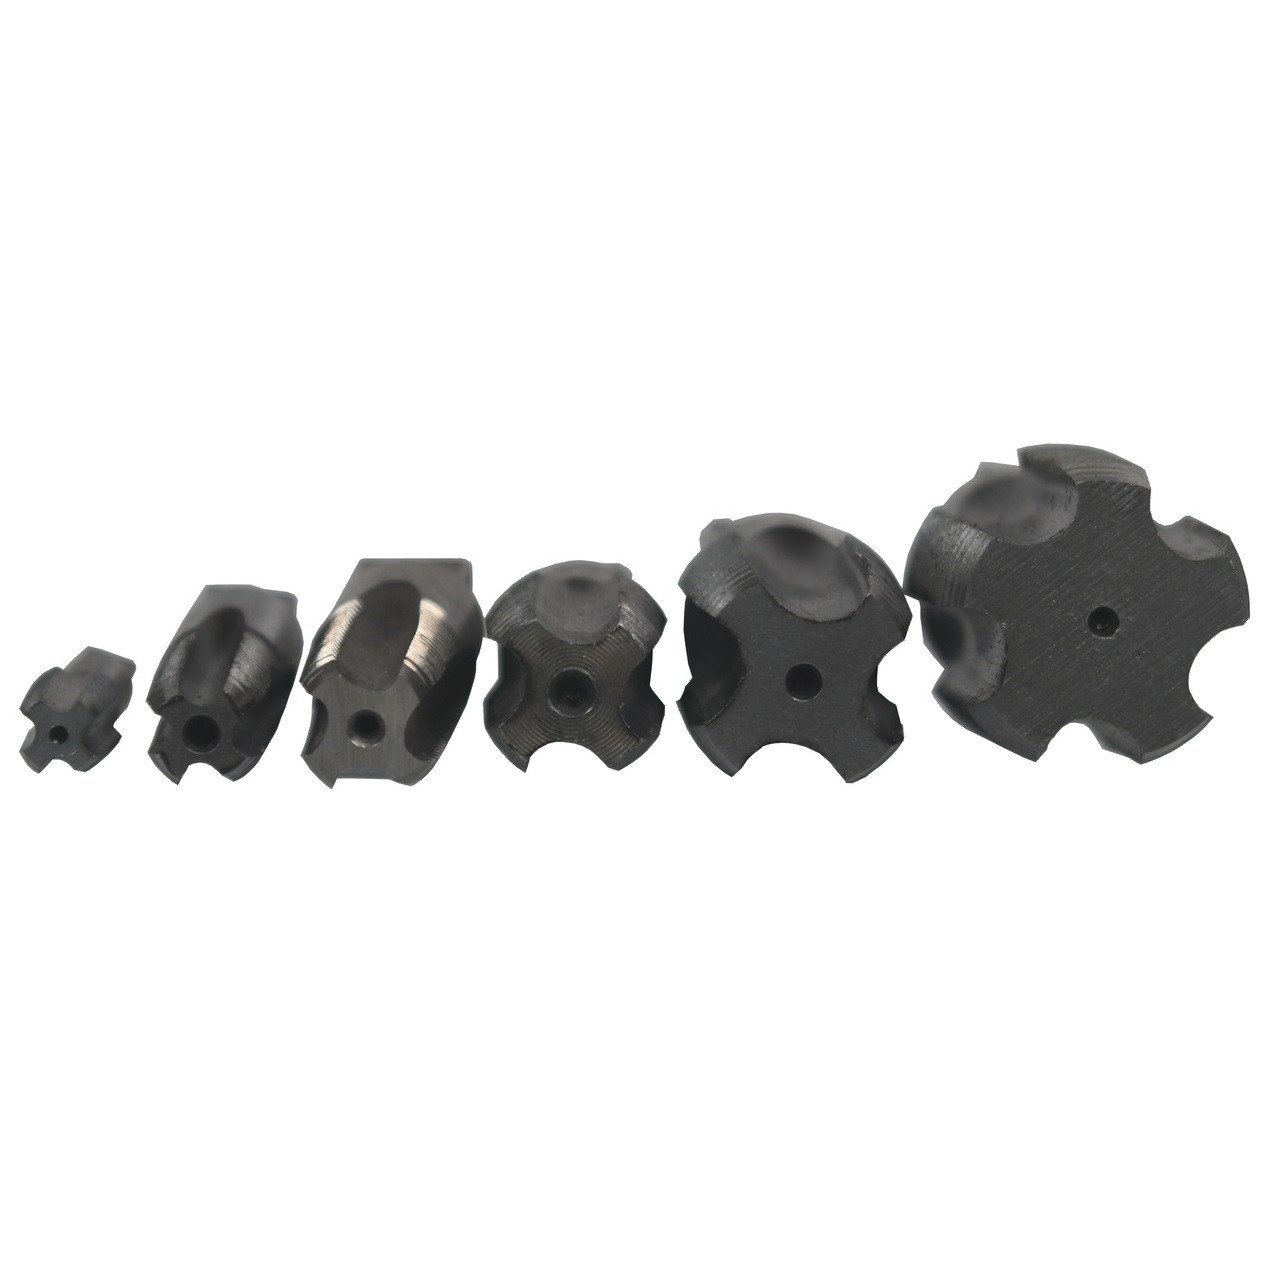 """5 Piece NPT Pipe Tap Set 1//8/"""", 1//4/"""", 3//8/"""", 1//2/"""" and 3//4/"""" Plastic Pouch Case PO"""